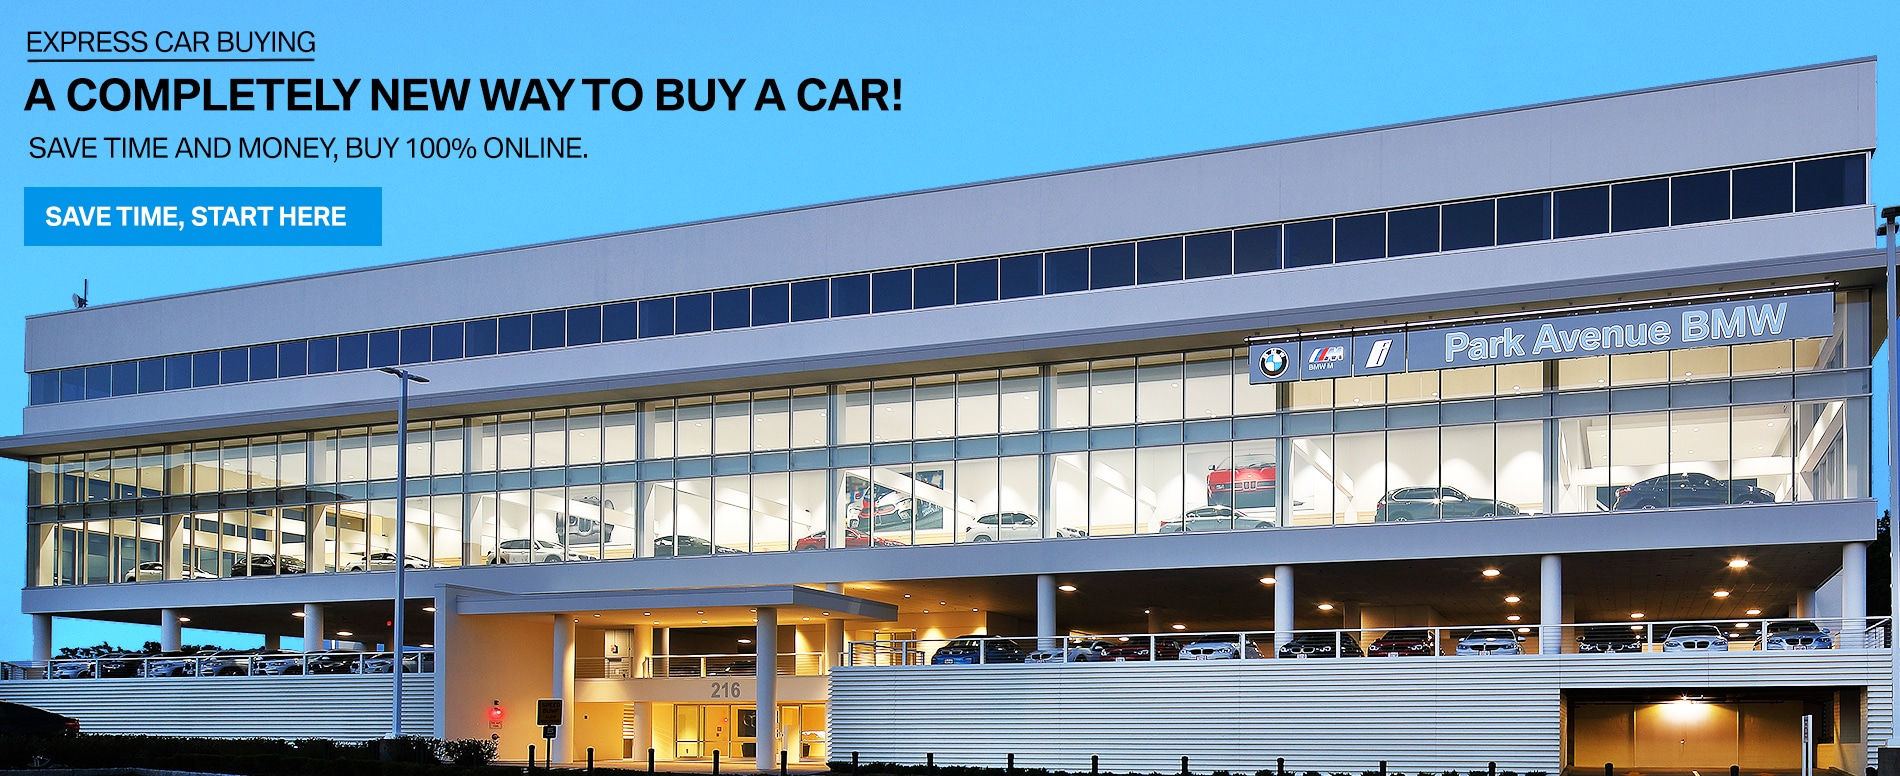 Park avenue bmw maywood nj